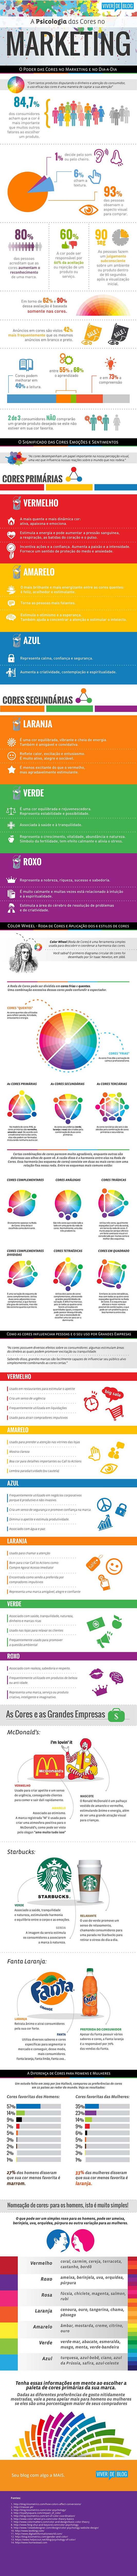 [INFOGRÁFICO] A PSICOLOGIA DAS CORES NO MARKETING E NO DIA-A-DIA